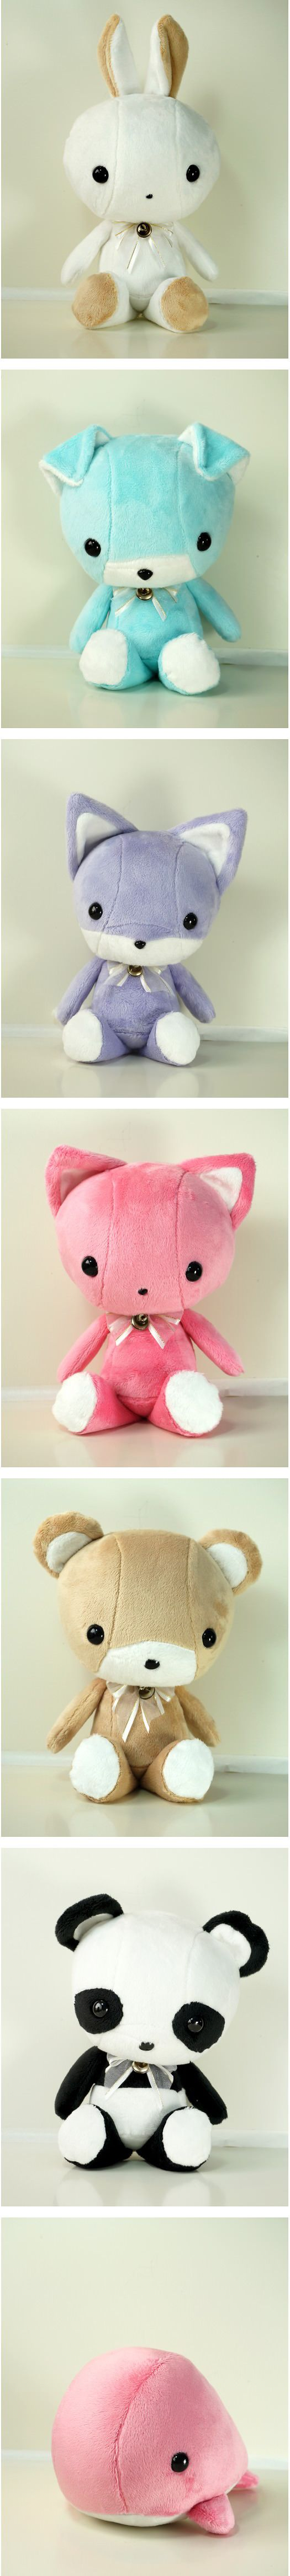 #Beautiful and #cute #plush #animals from Bellzie. The #kids love them, I do so, too.